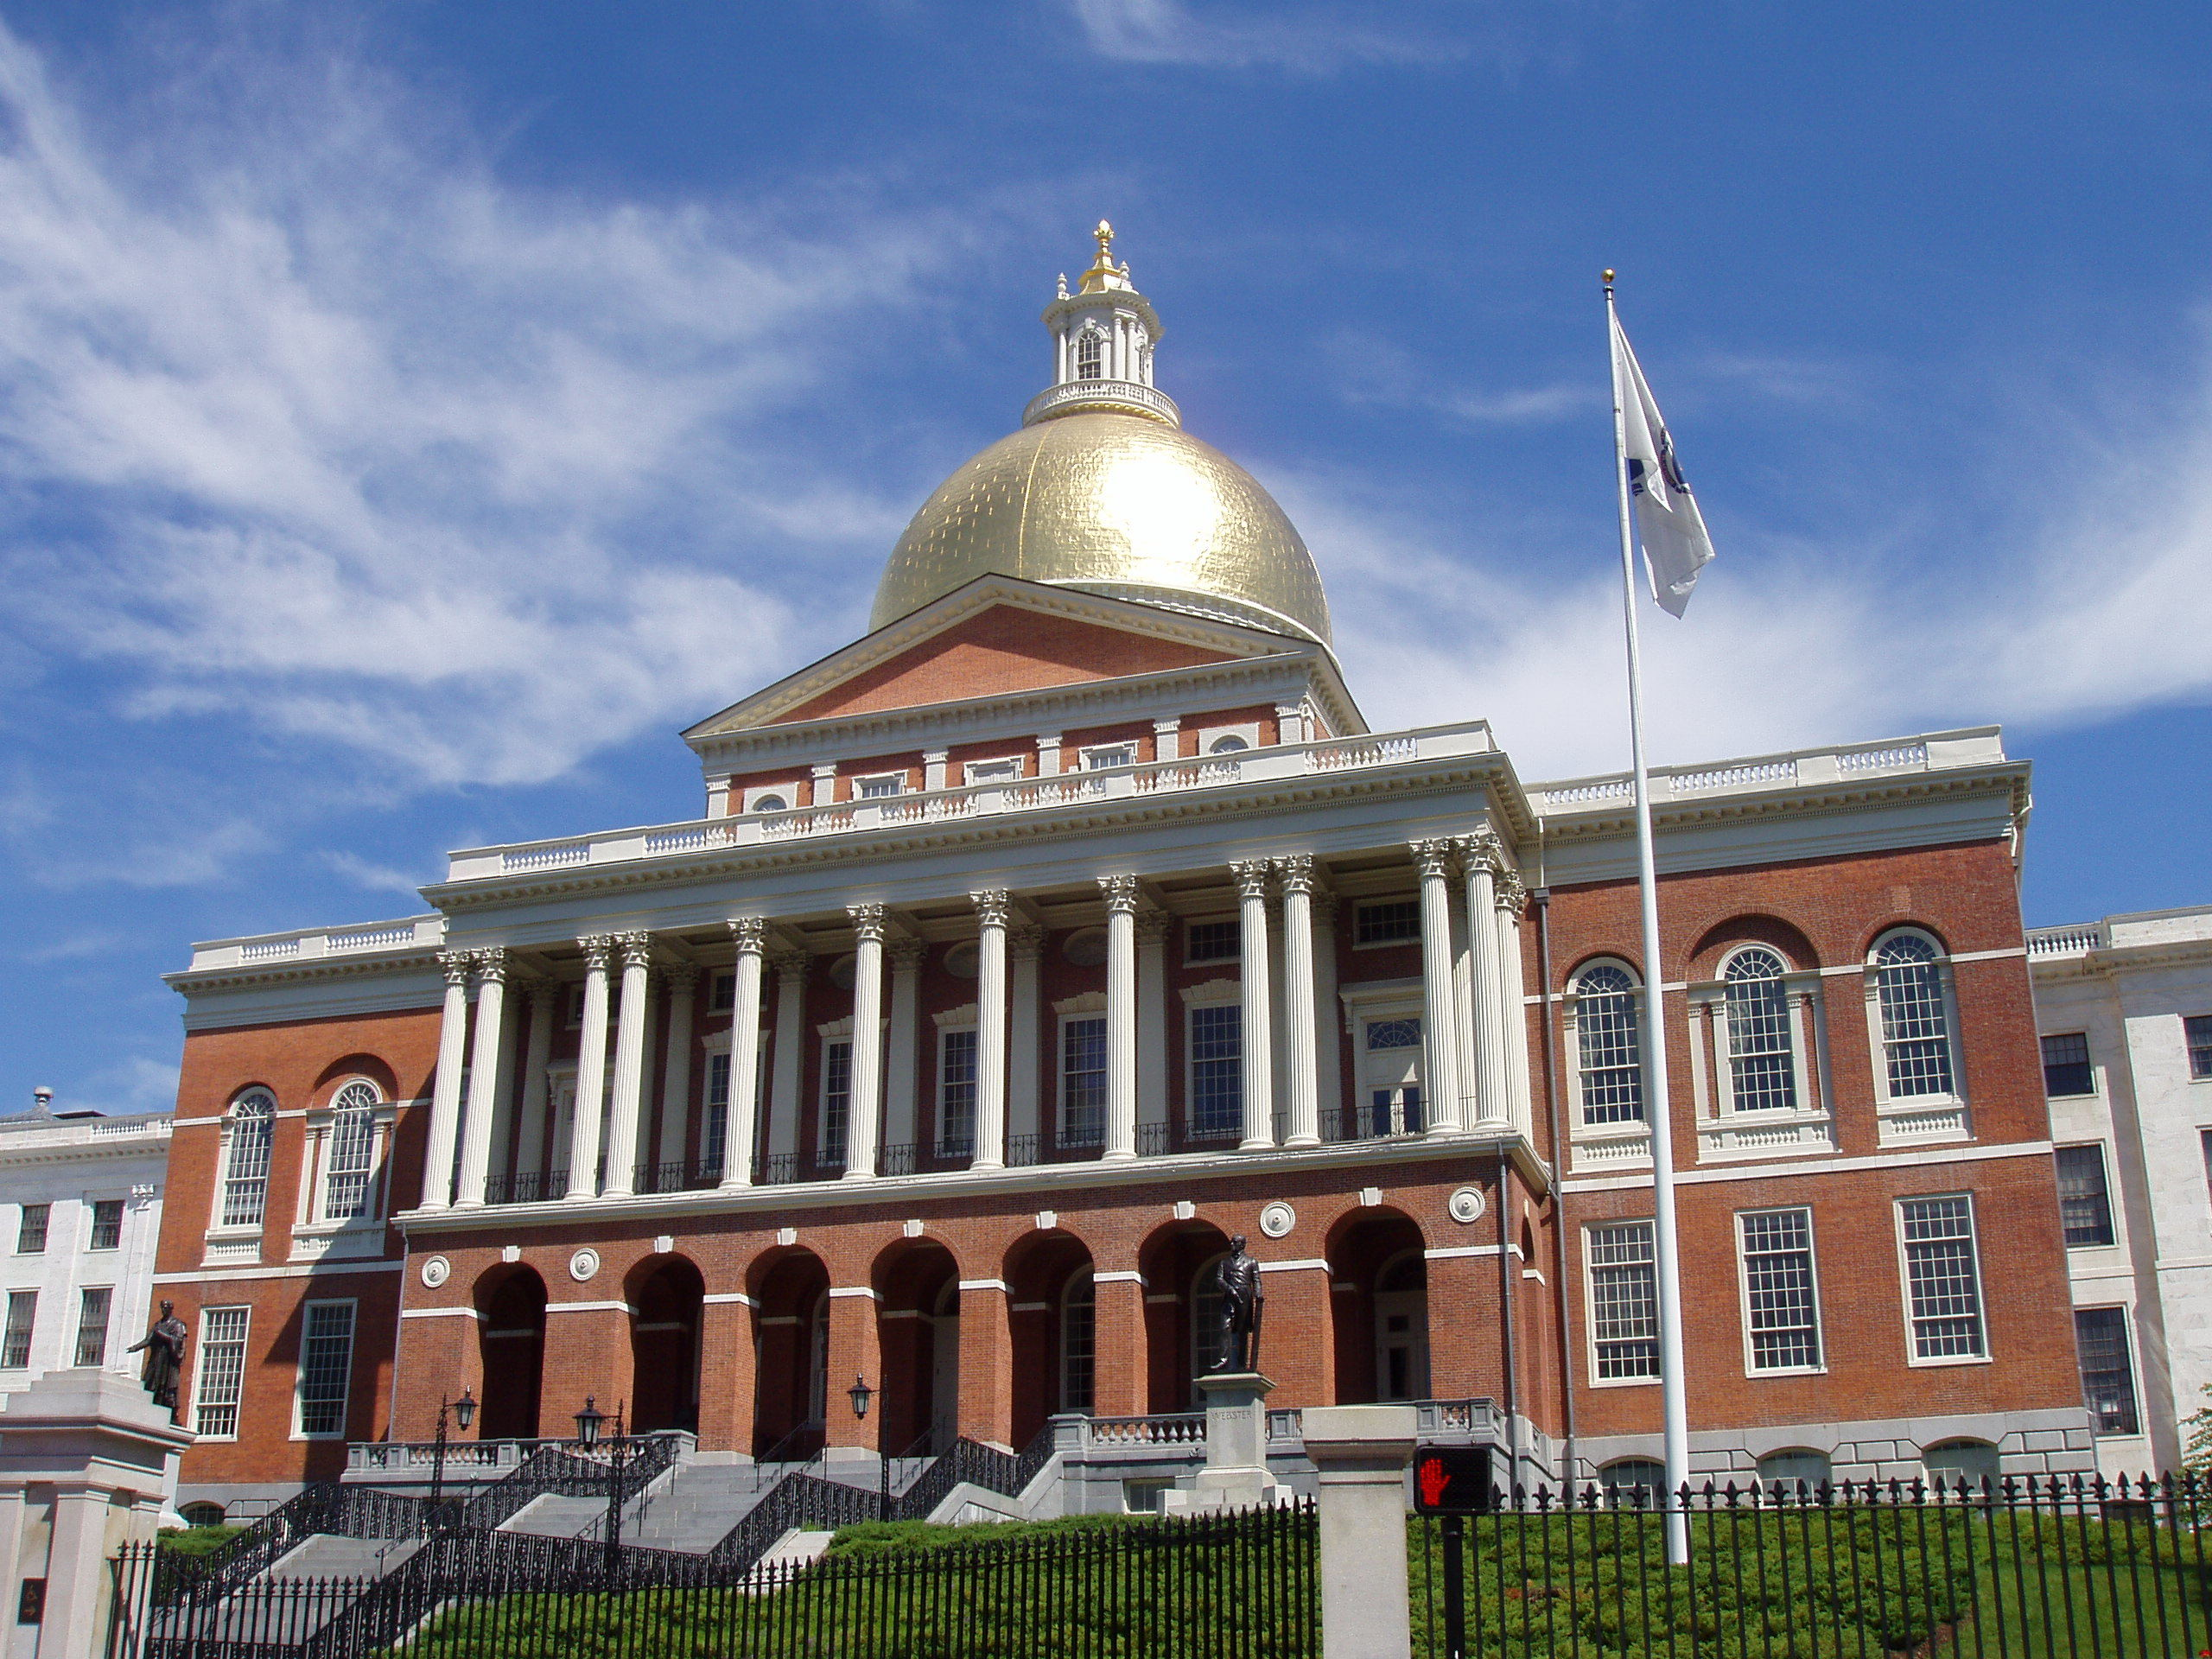 Massachusetts, state house, Boston